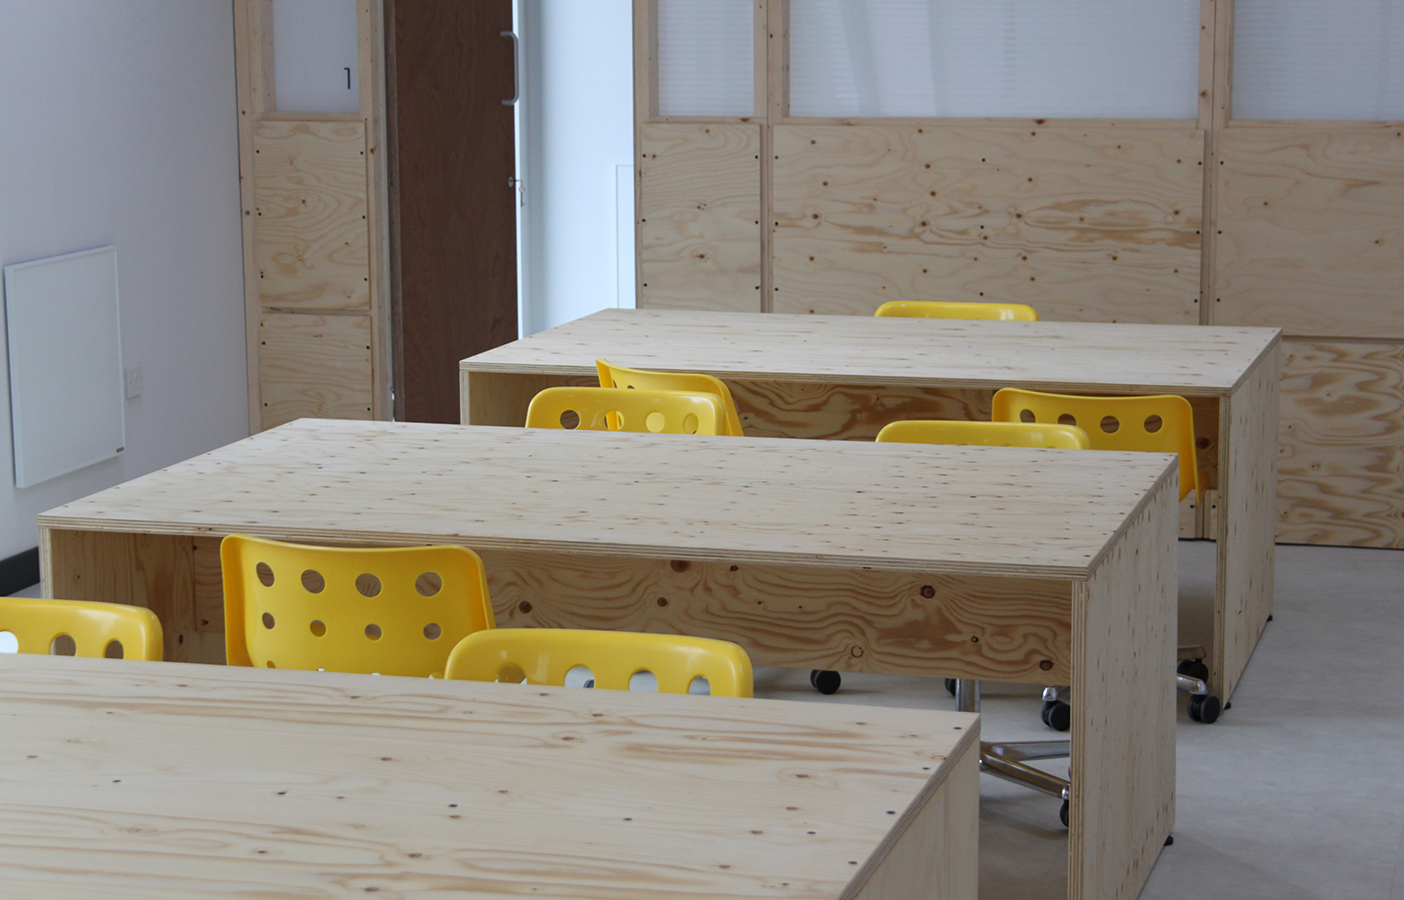 Aldworth James & Bond | Fabricating workstations at the new PLACE/Ladywell co-working space